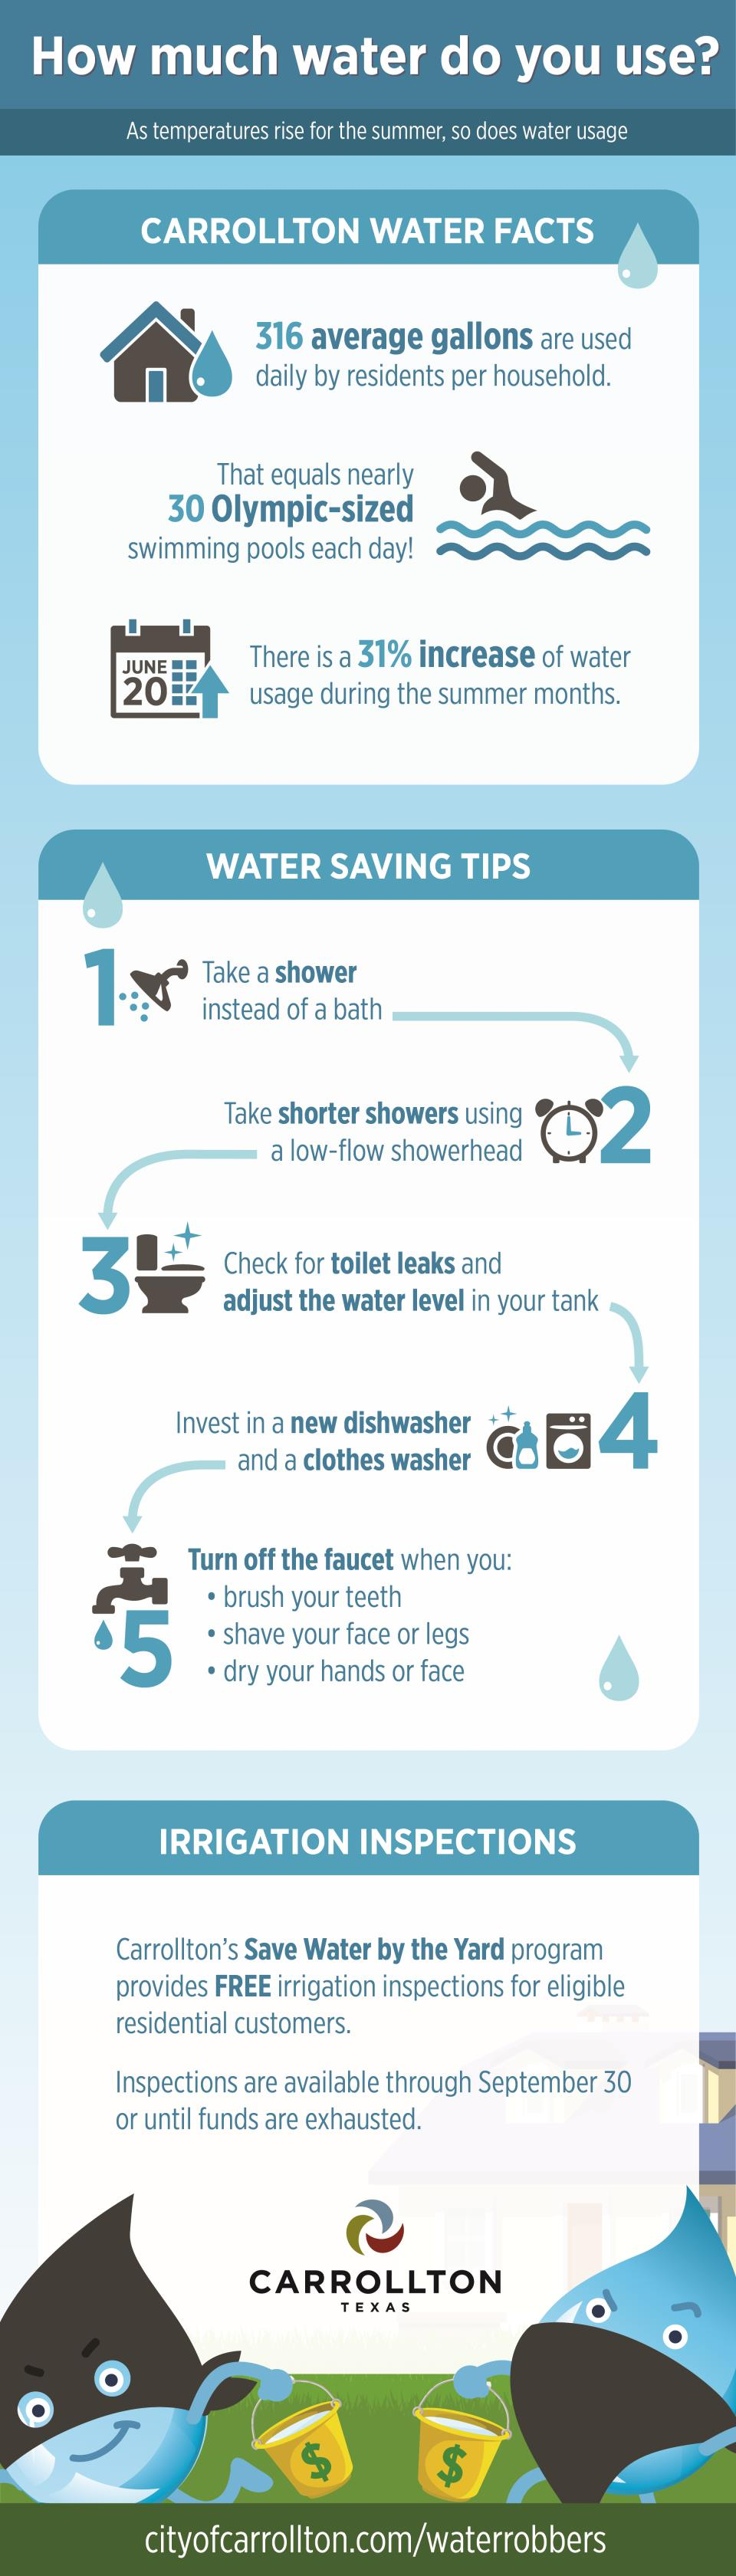 water_robbers_infographic